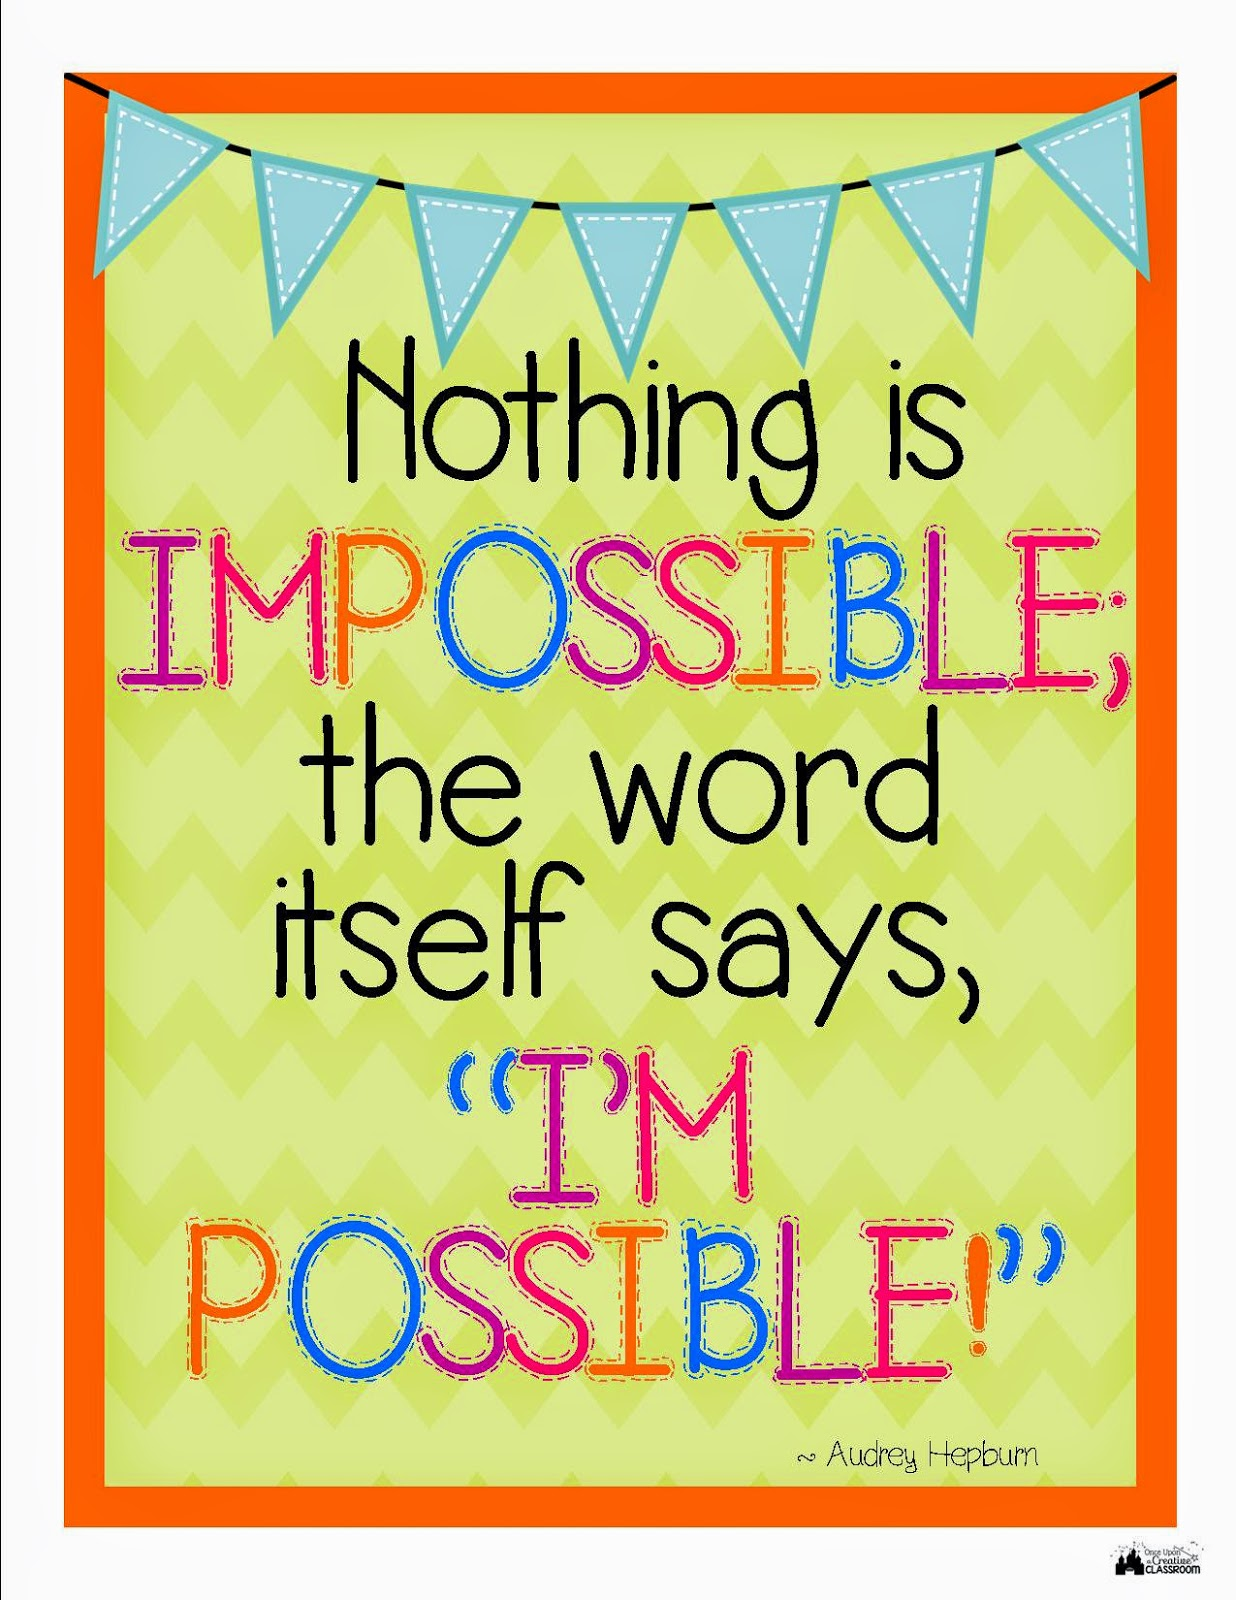 Student council inspirational quotes - managementdynamics.info